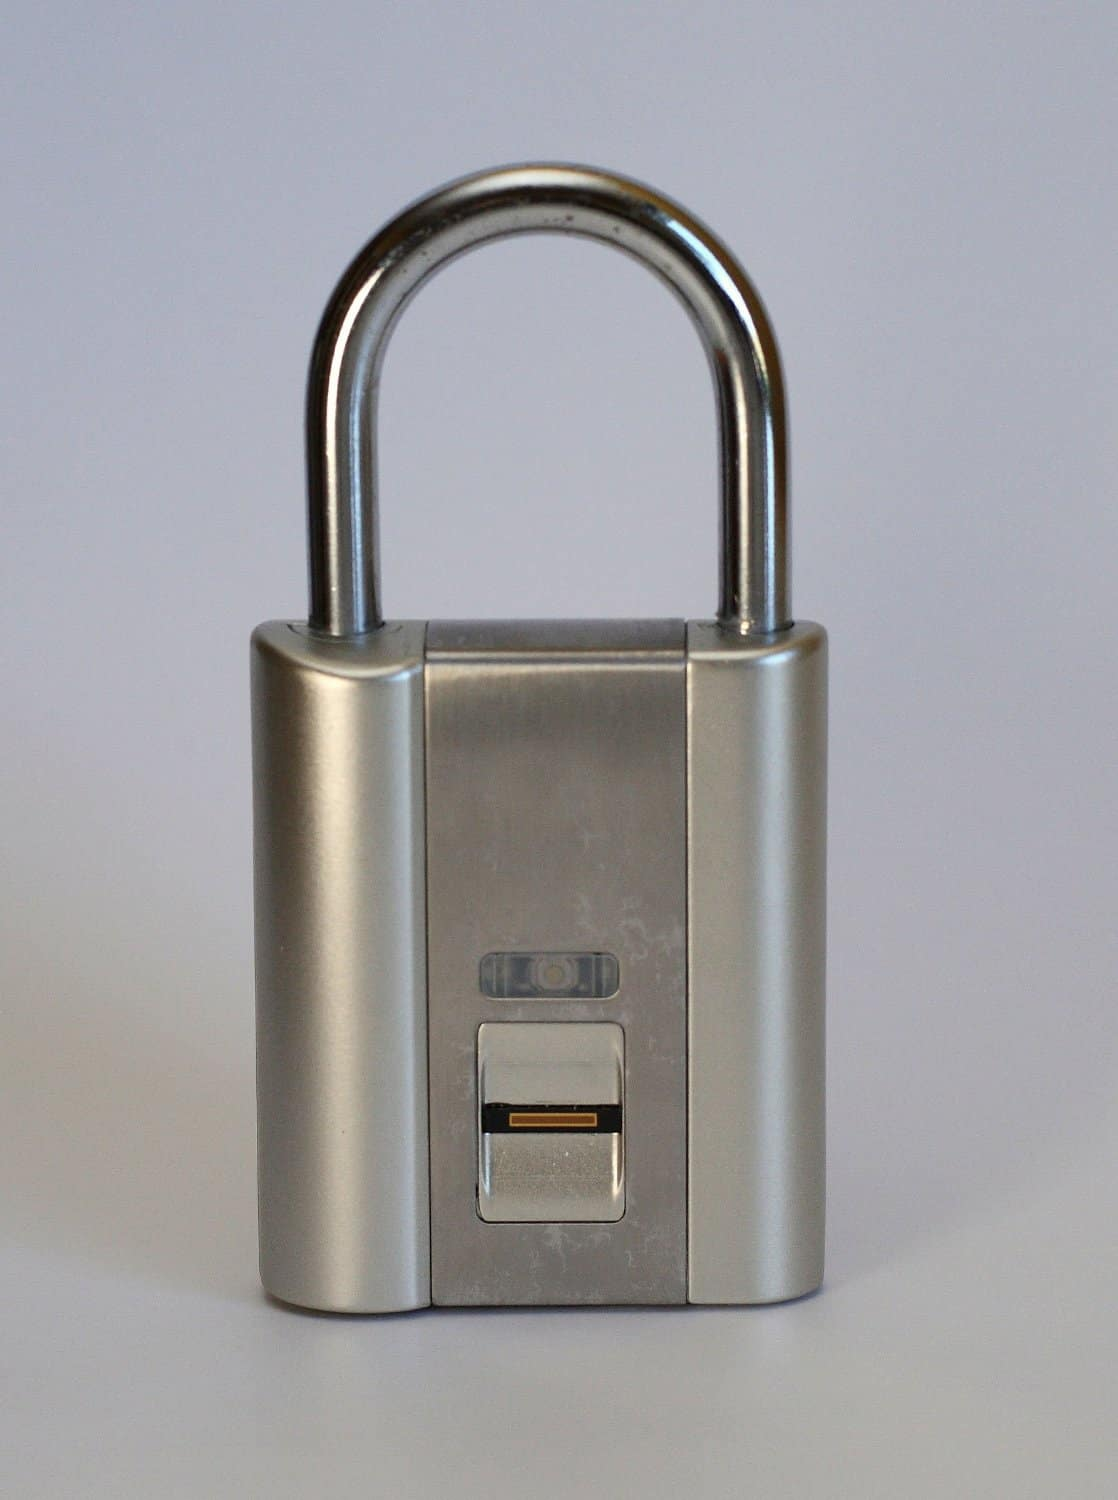 iFingerLock Fingerprint Biometric Padlock for Multiple Users